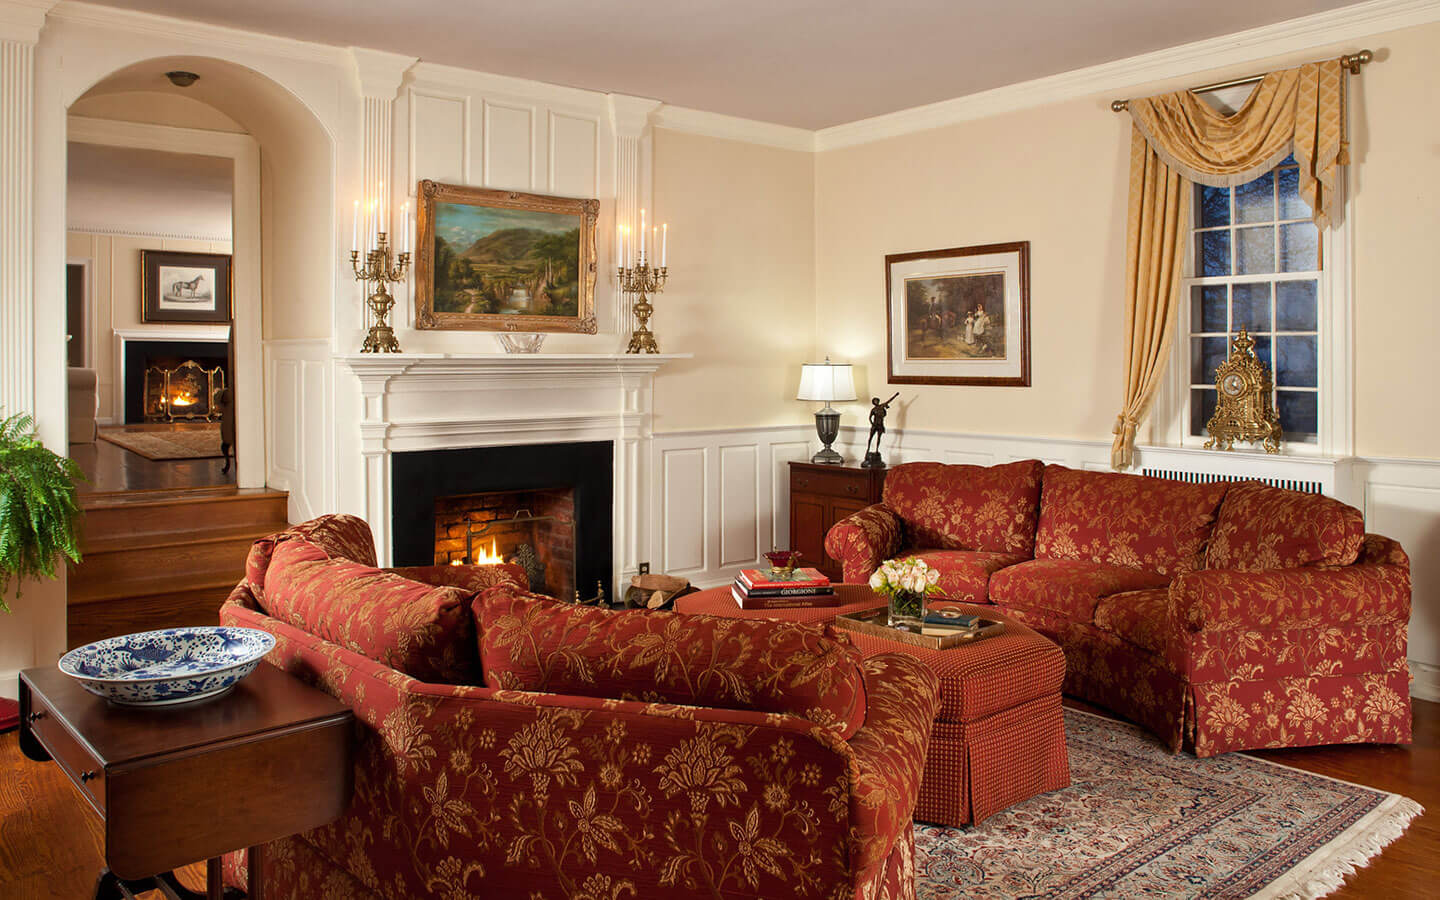 Luxury sitting area with gas fireplace at our bed and breakfast near Orange, VA